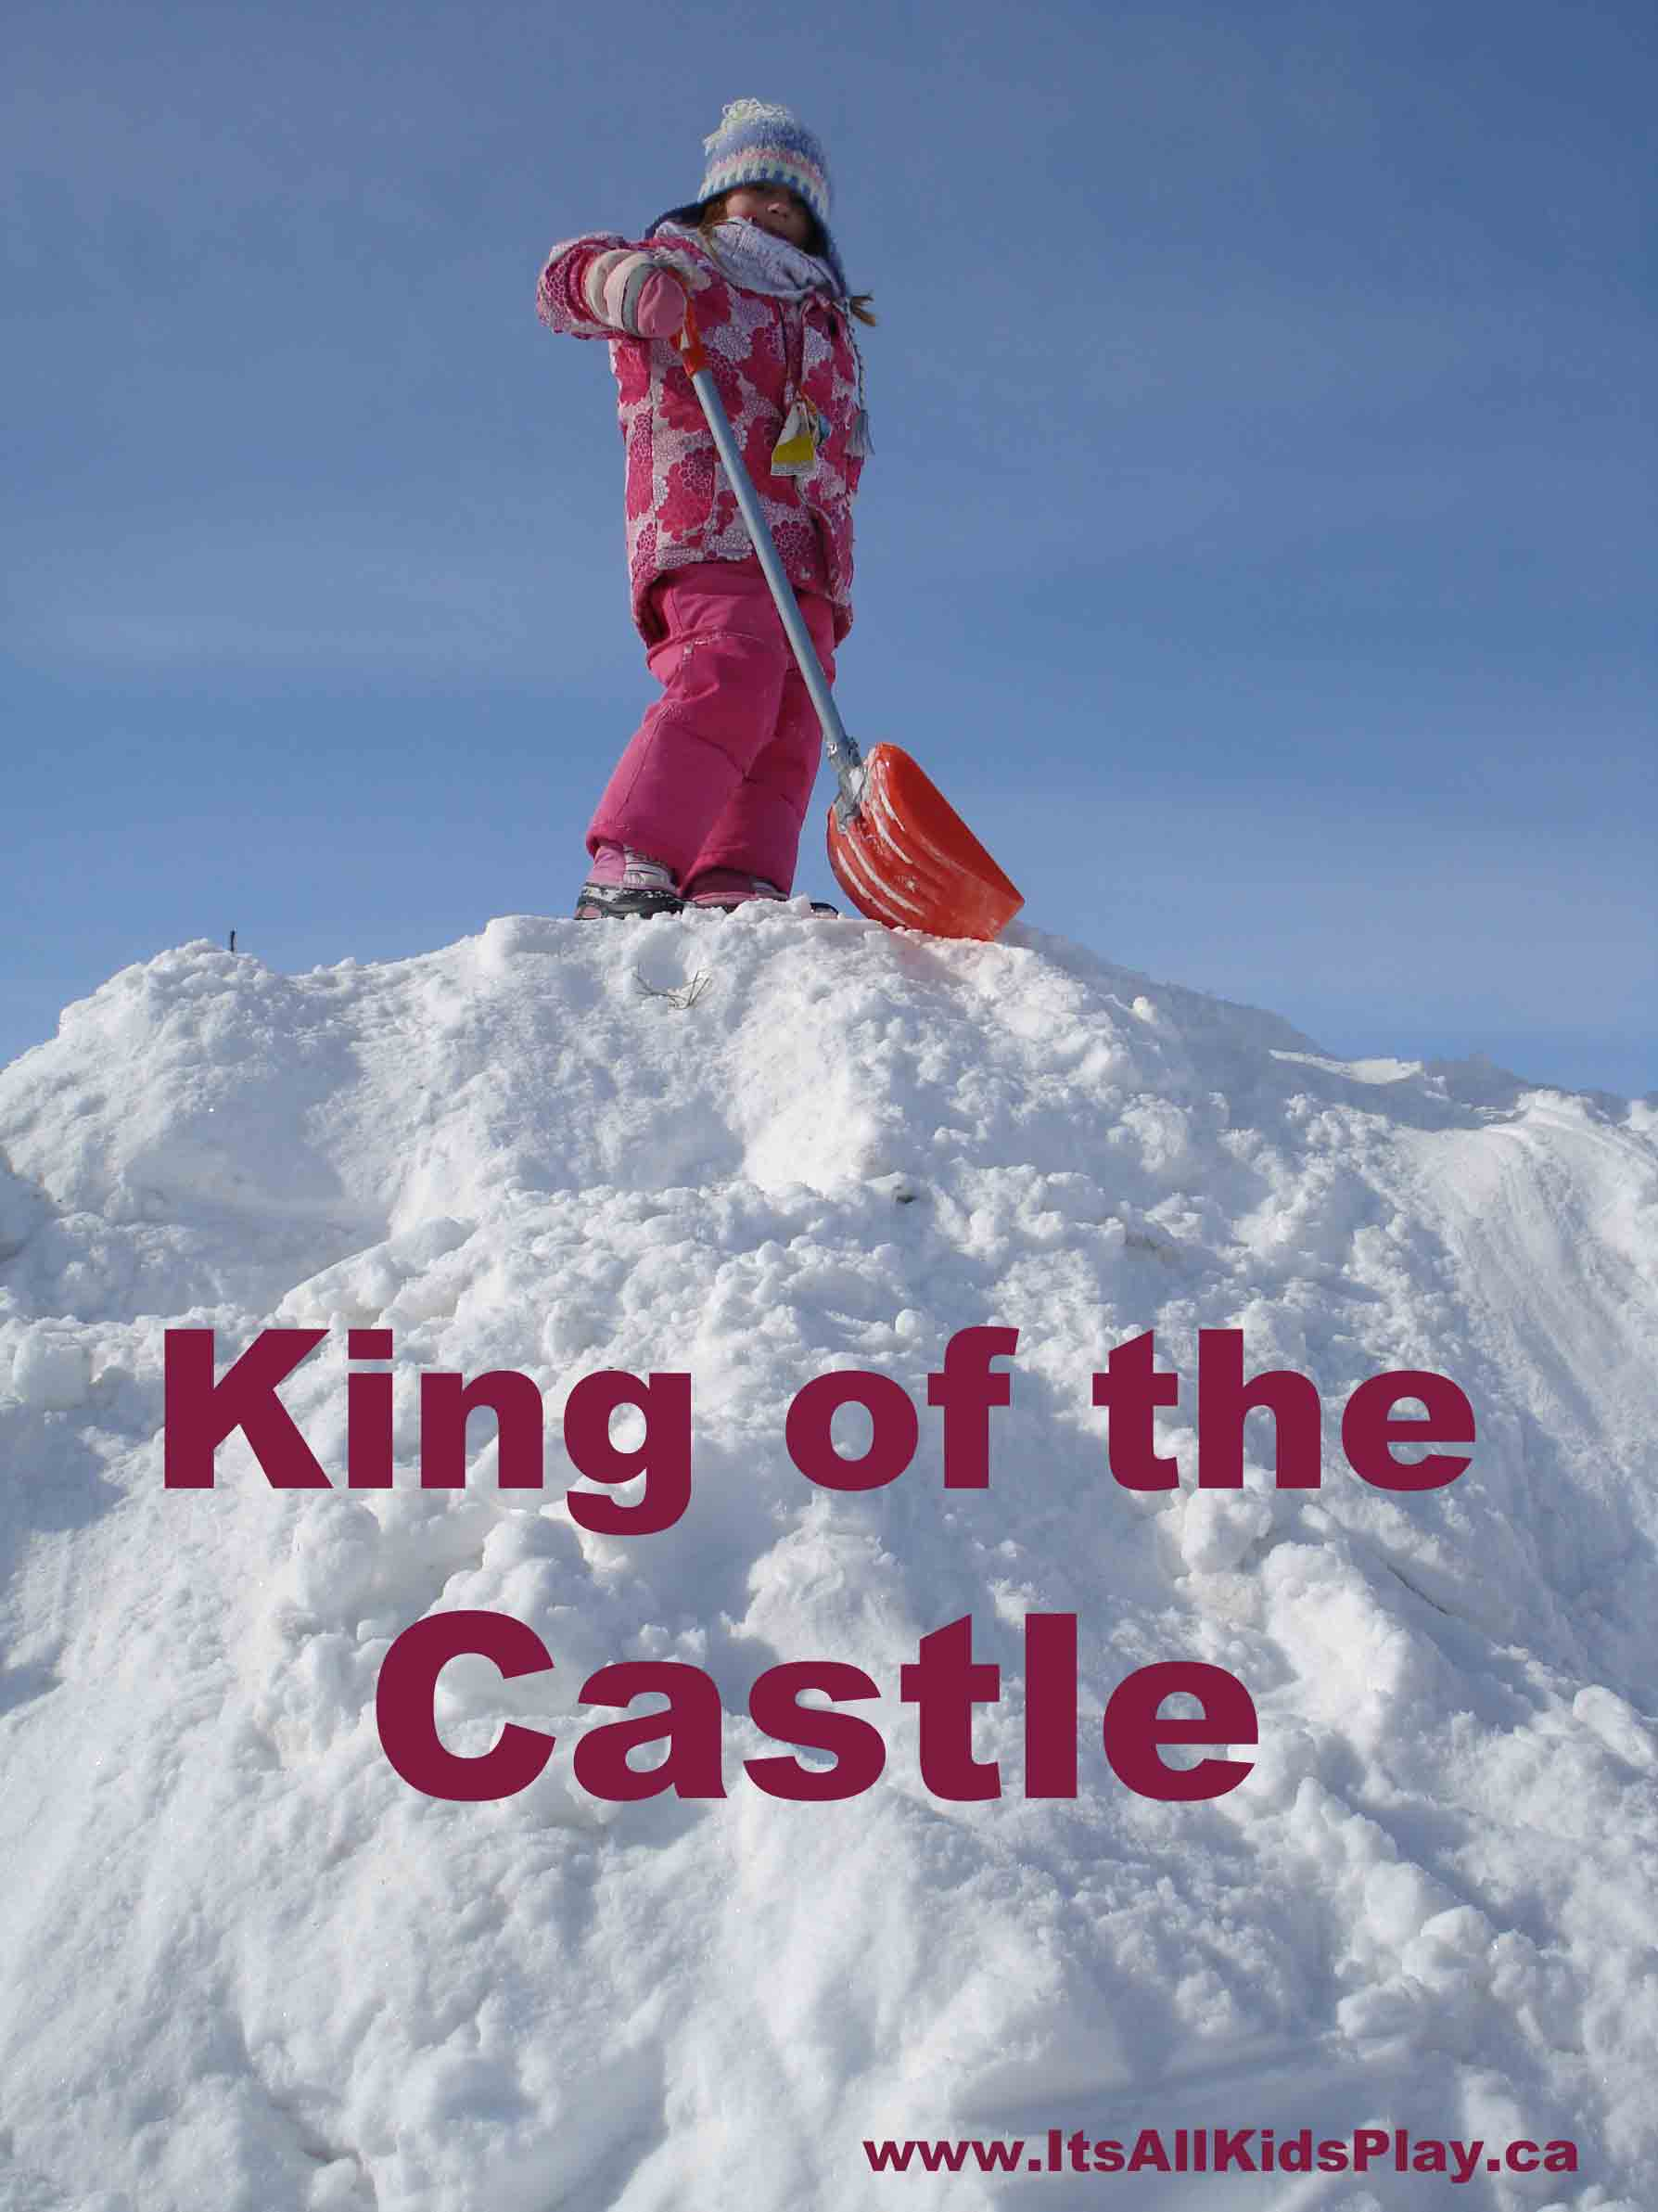 King of the Castle – It's All Kid's Play